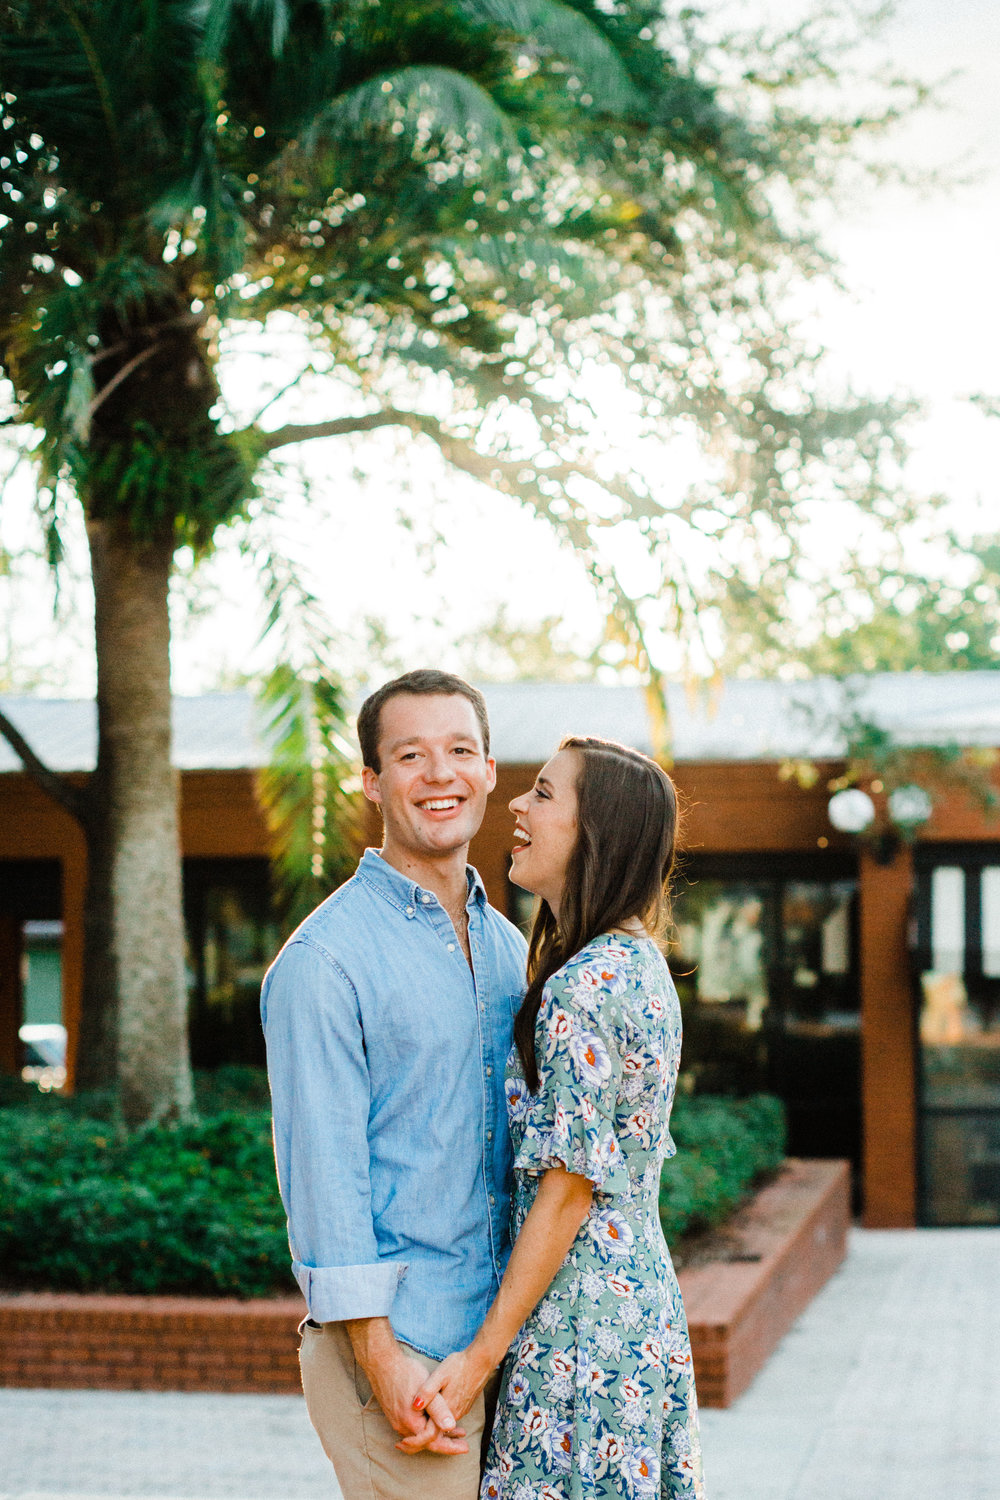 Travis & Christina - Engagement - Jake & Katie Photography_008.jpg